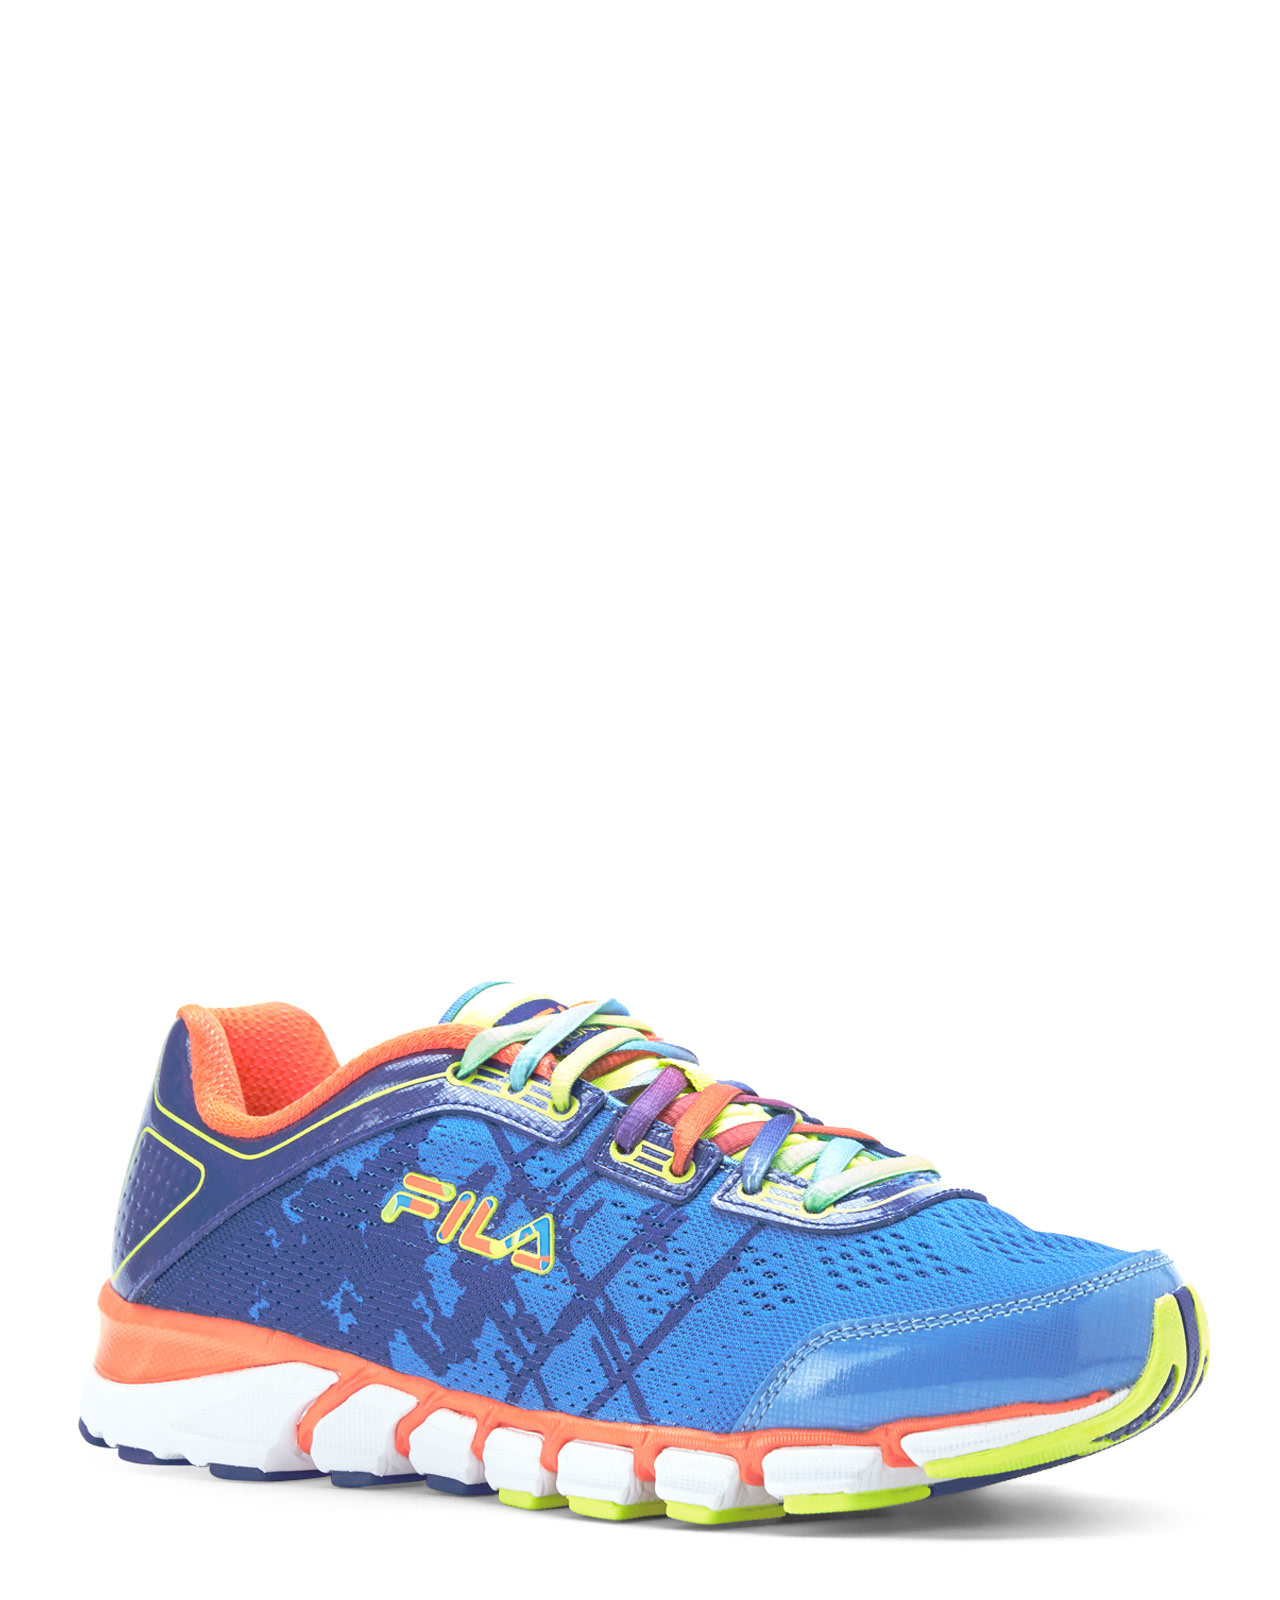 Fila Blue & Coral Turbo Fuel Energized Sneakers